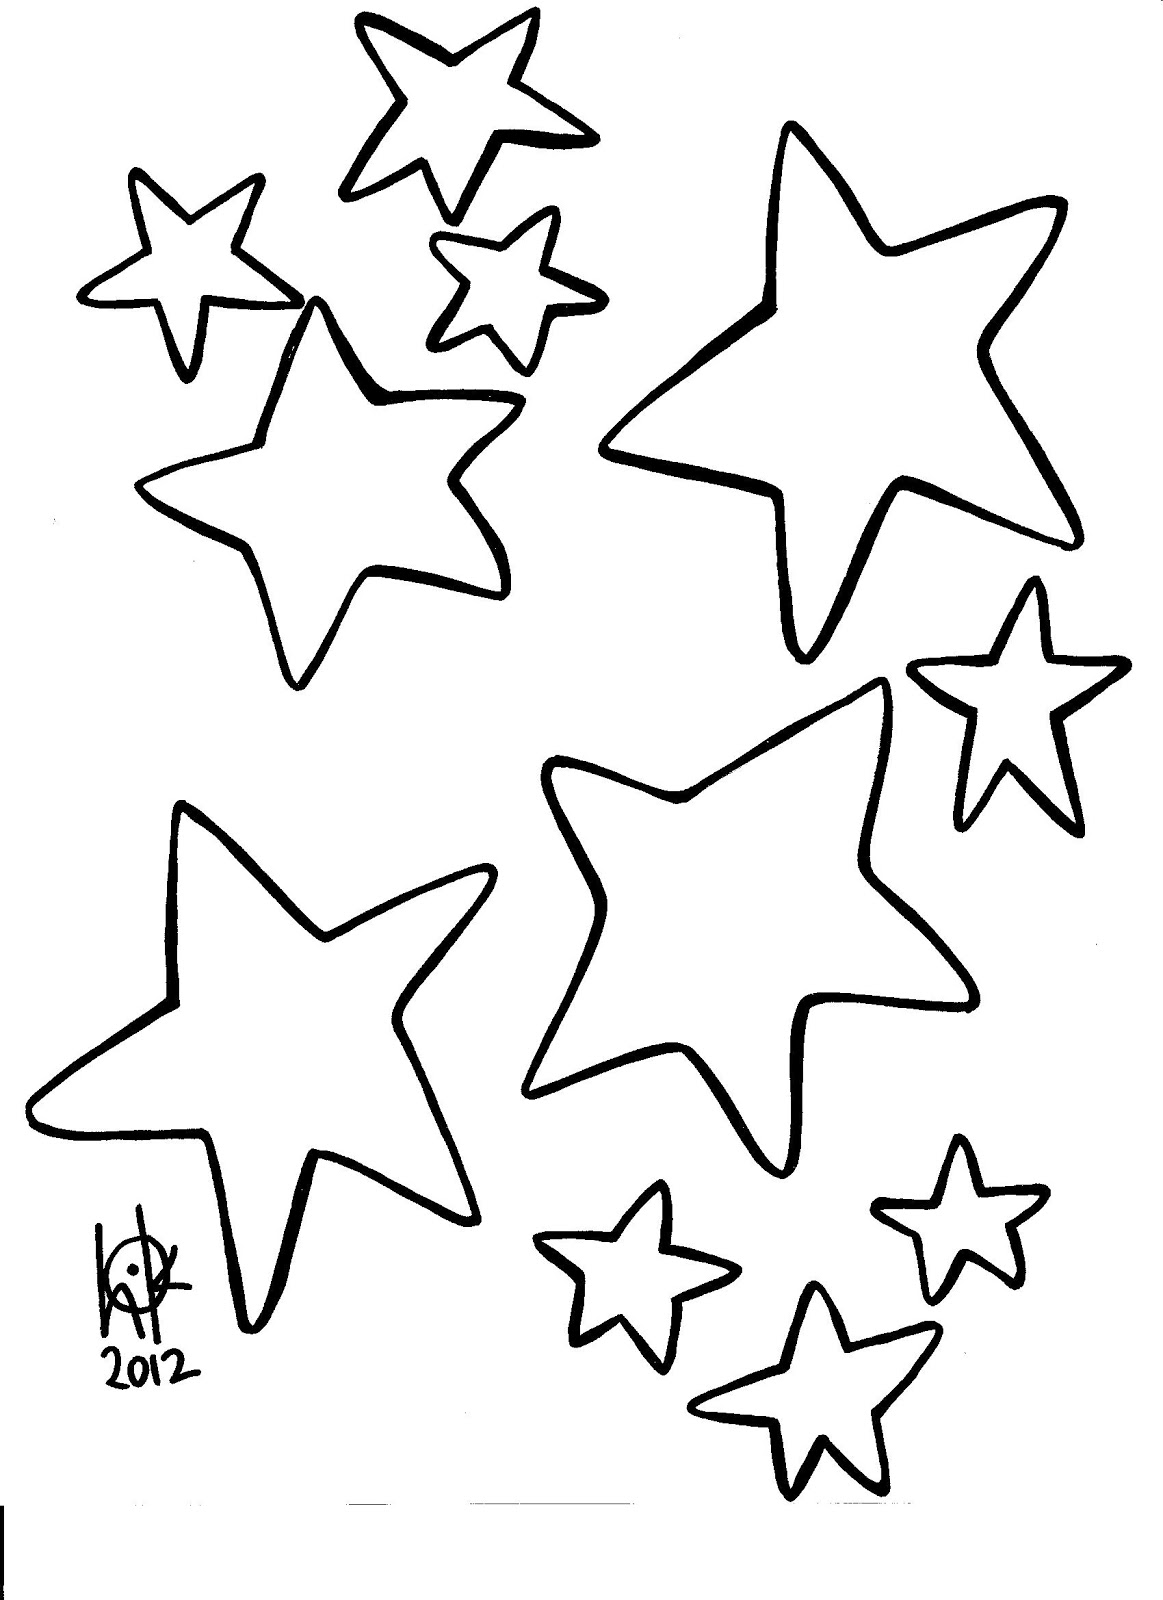 artist holiday: Coloring Book Creation